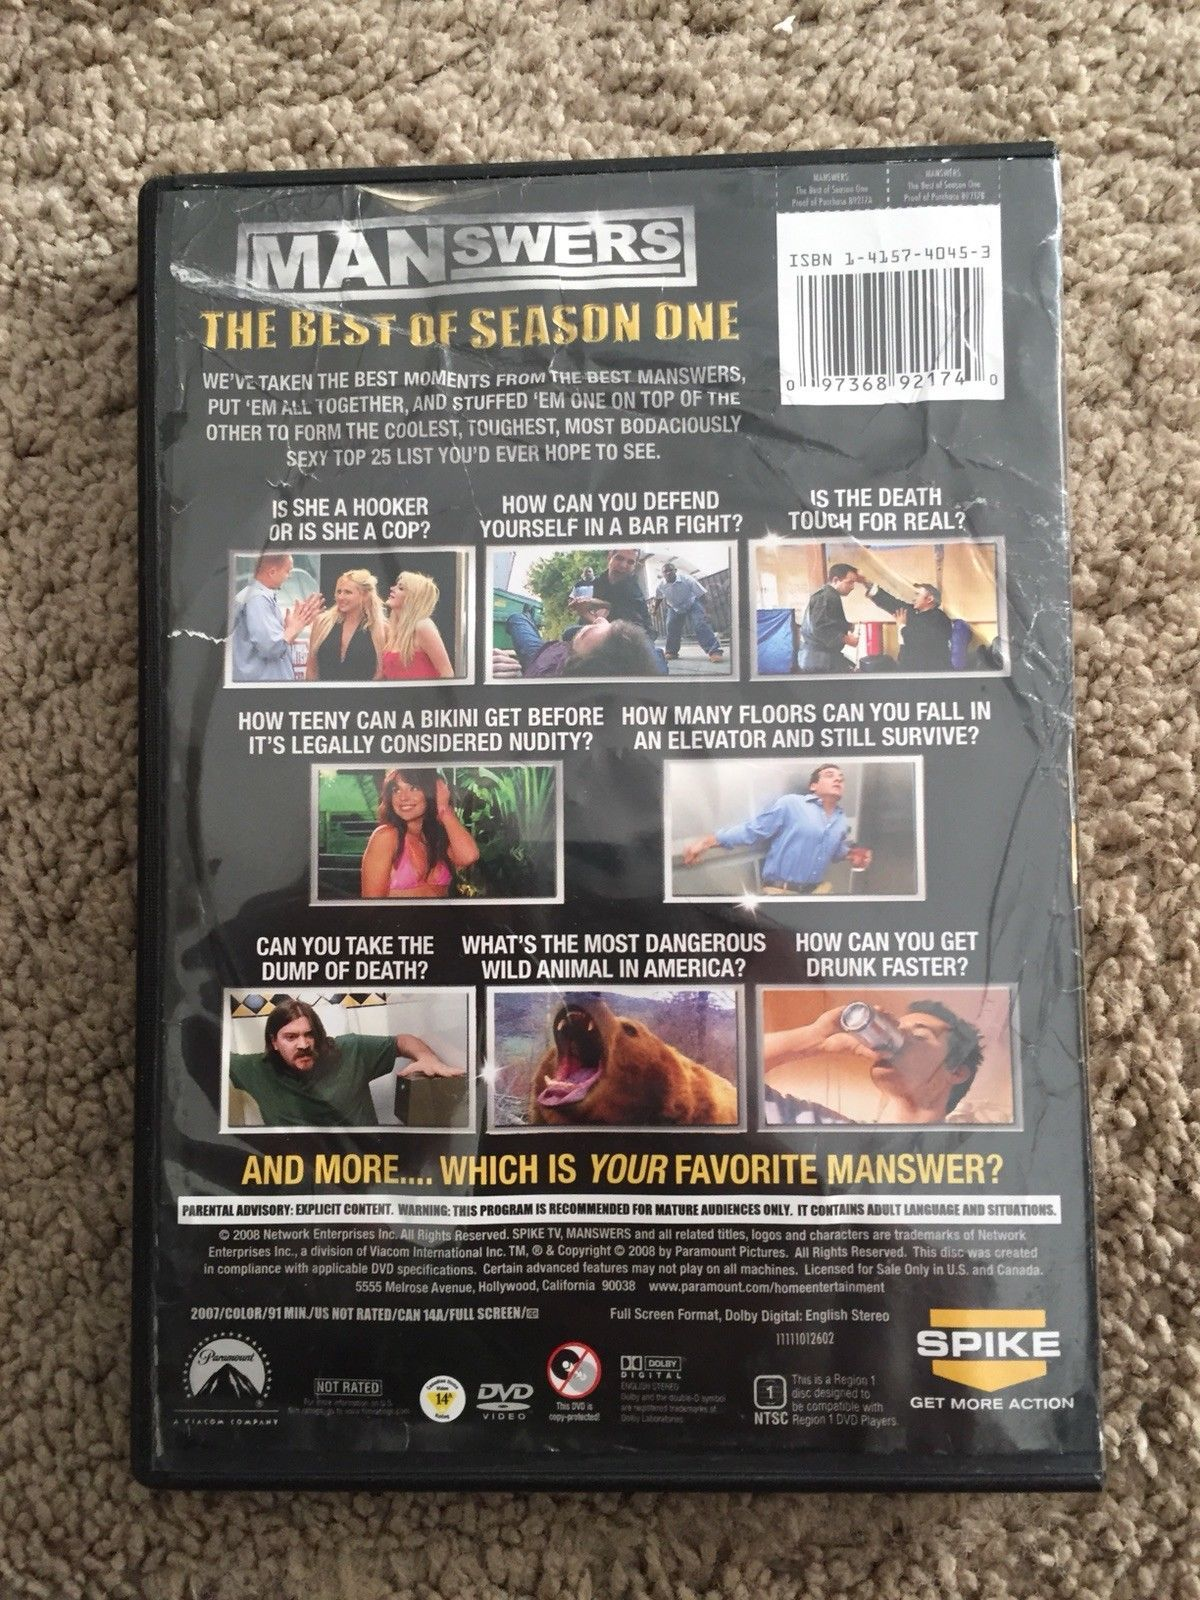 Manswers best time to masturbate